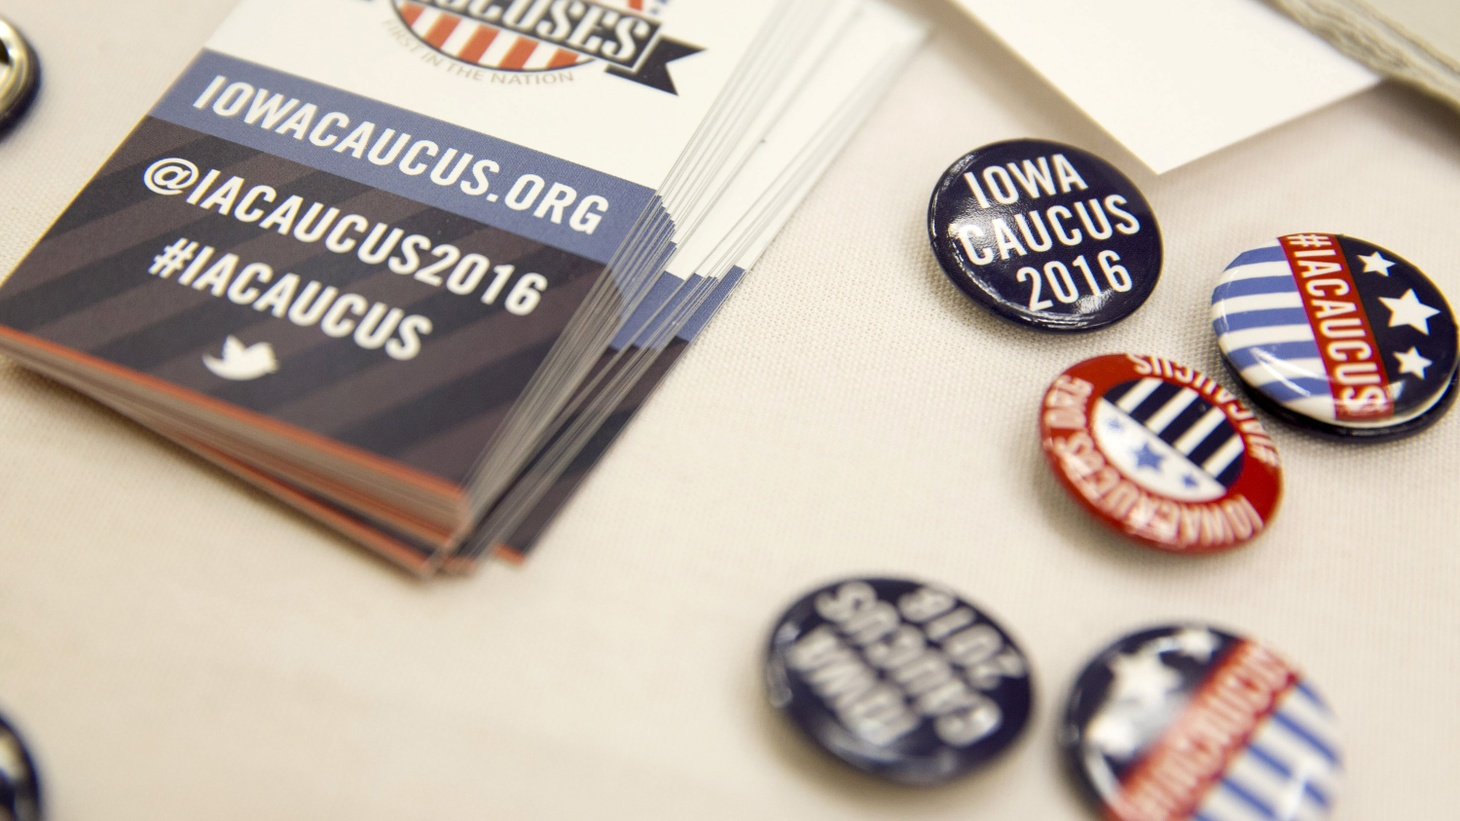 Three days before the Iowa caucuses, the presidential nomination campaign is more chaotic than ever… with Donald Trump staging his own show instead of debating opponents. We hear what's at stake for Republicans, and for Democrats, in what's only the first stop in what could be a long road to nomination.